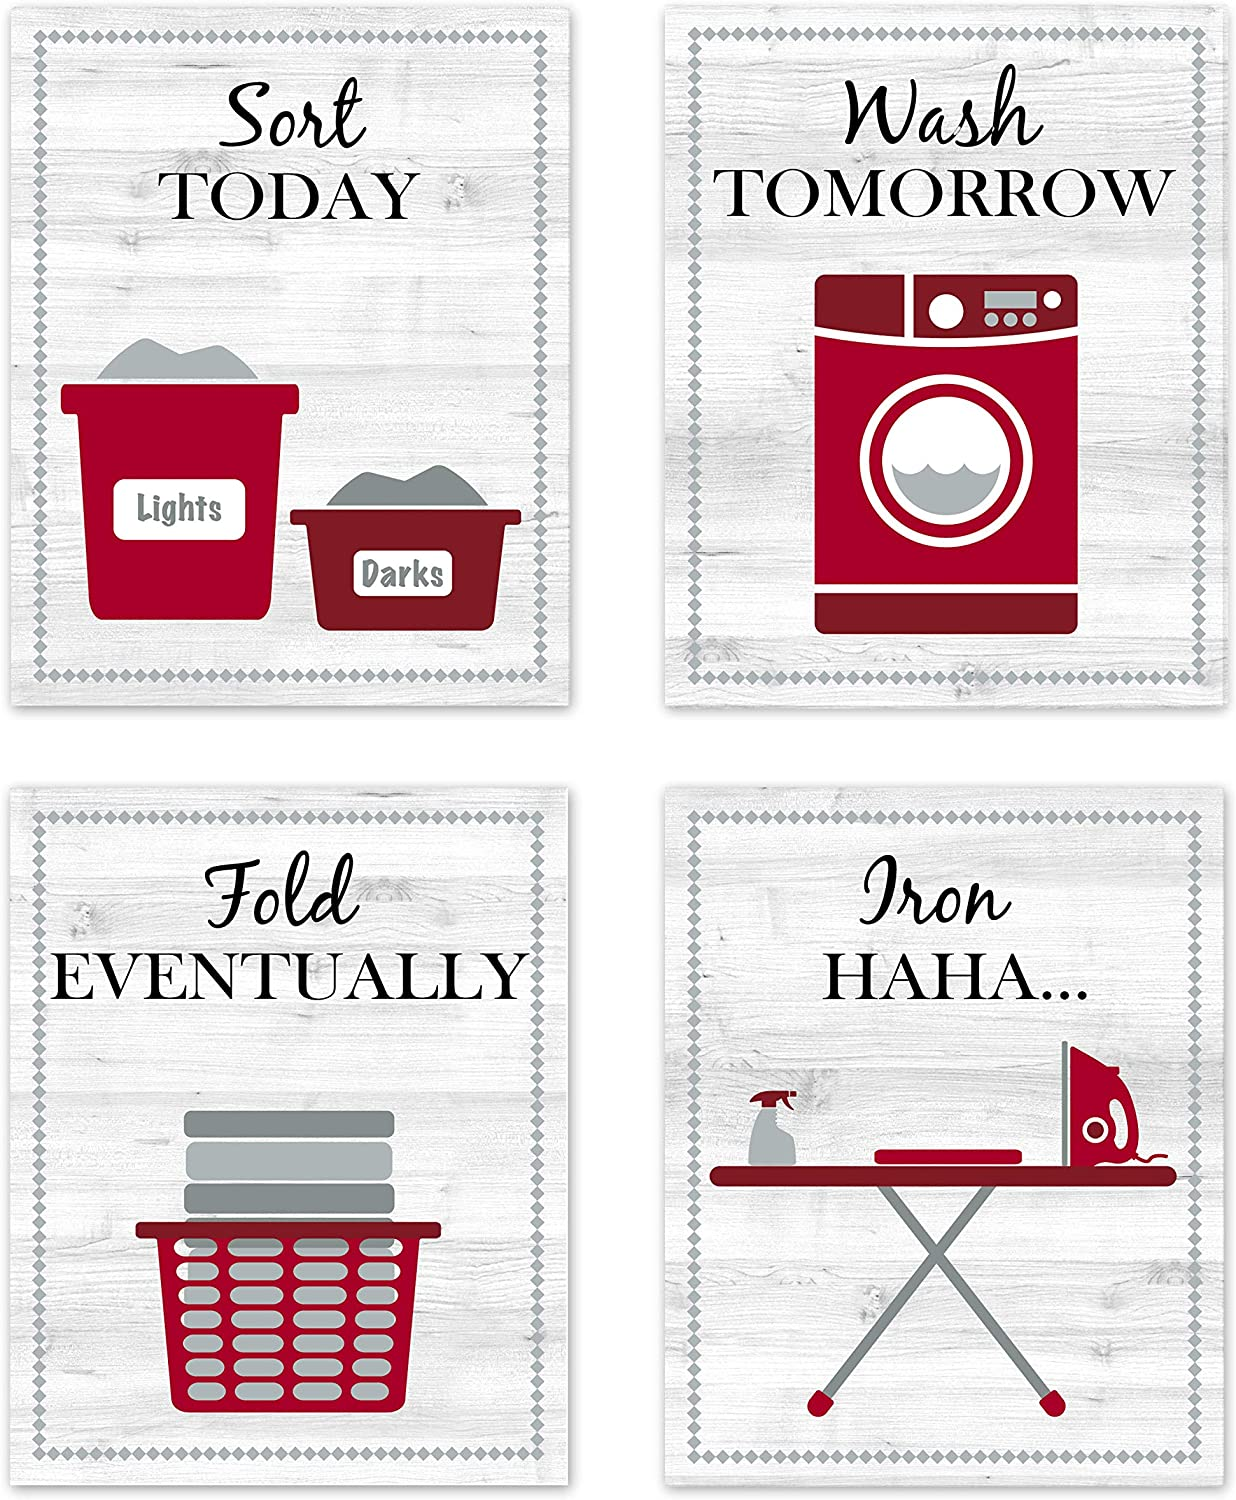 "Red Maroon Gray and White Retro Vintage Inspirational Laundry Room Rules Decorations Decor Wall Art for Laundromat Wash Sort Fold Iron Prints Posters Pictures Sign Rustic Modern Farmhouse Country Home Funny Sayings Quotes Unframed 8""x10"""